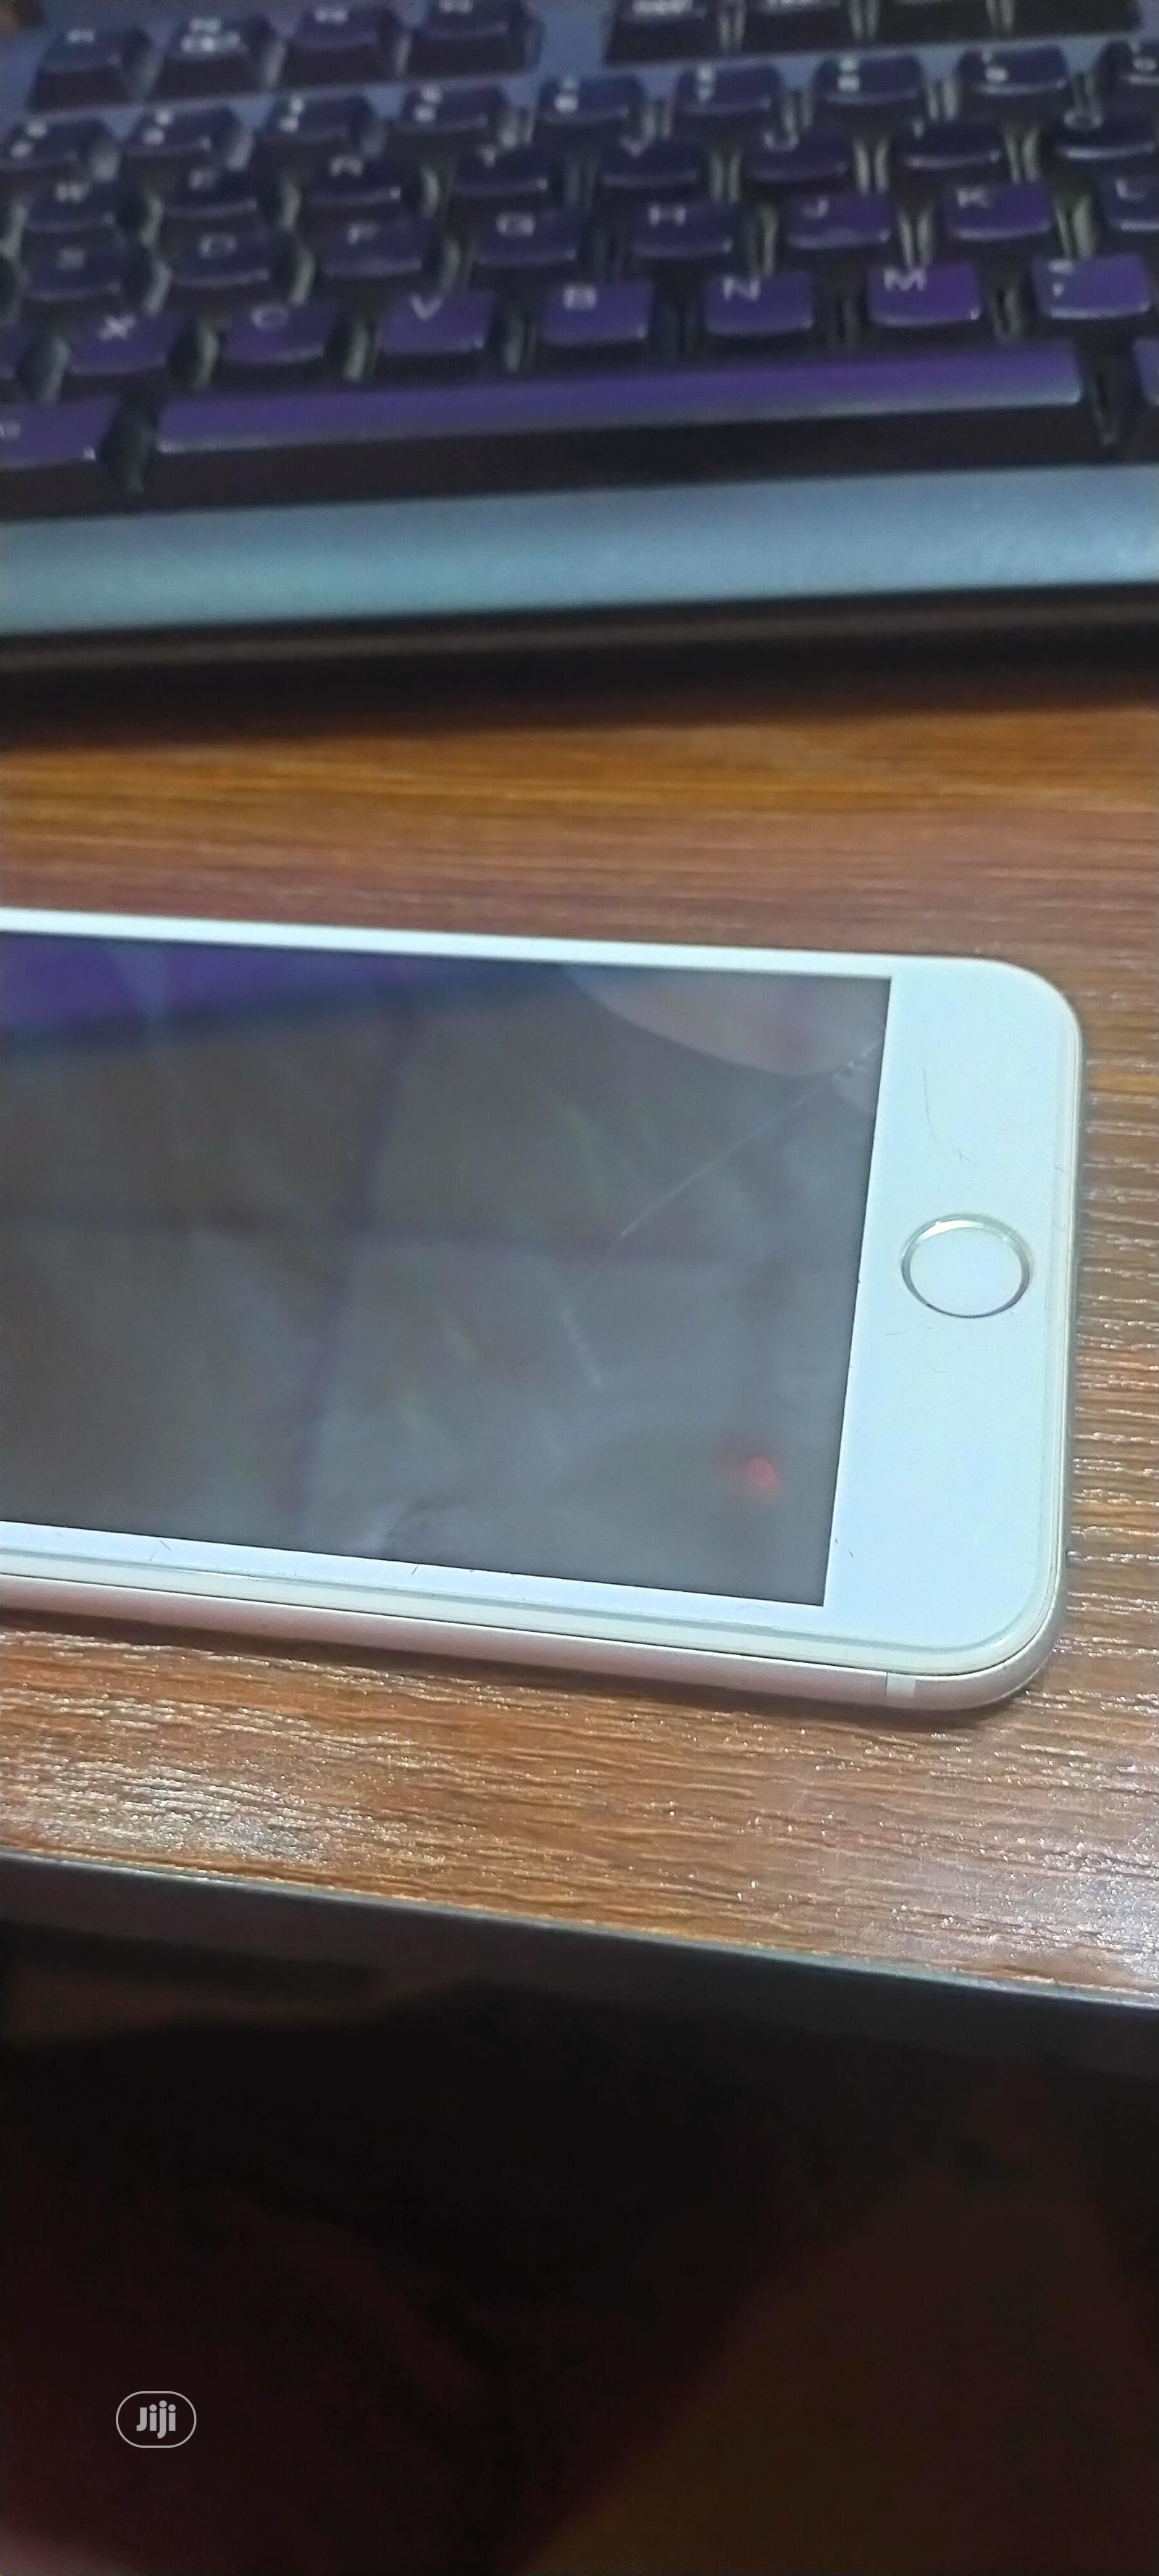 Apple iPhone 6 Plus 16 GB White | Mobile Phones for sale in Shomolu, Lagos State, Nigeria